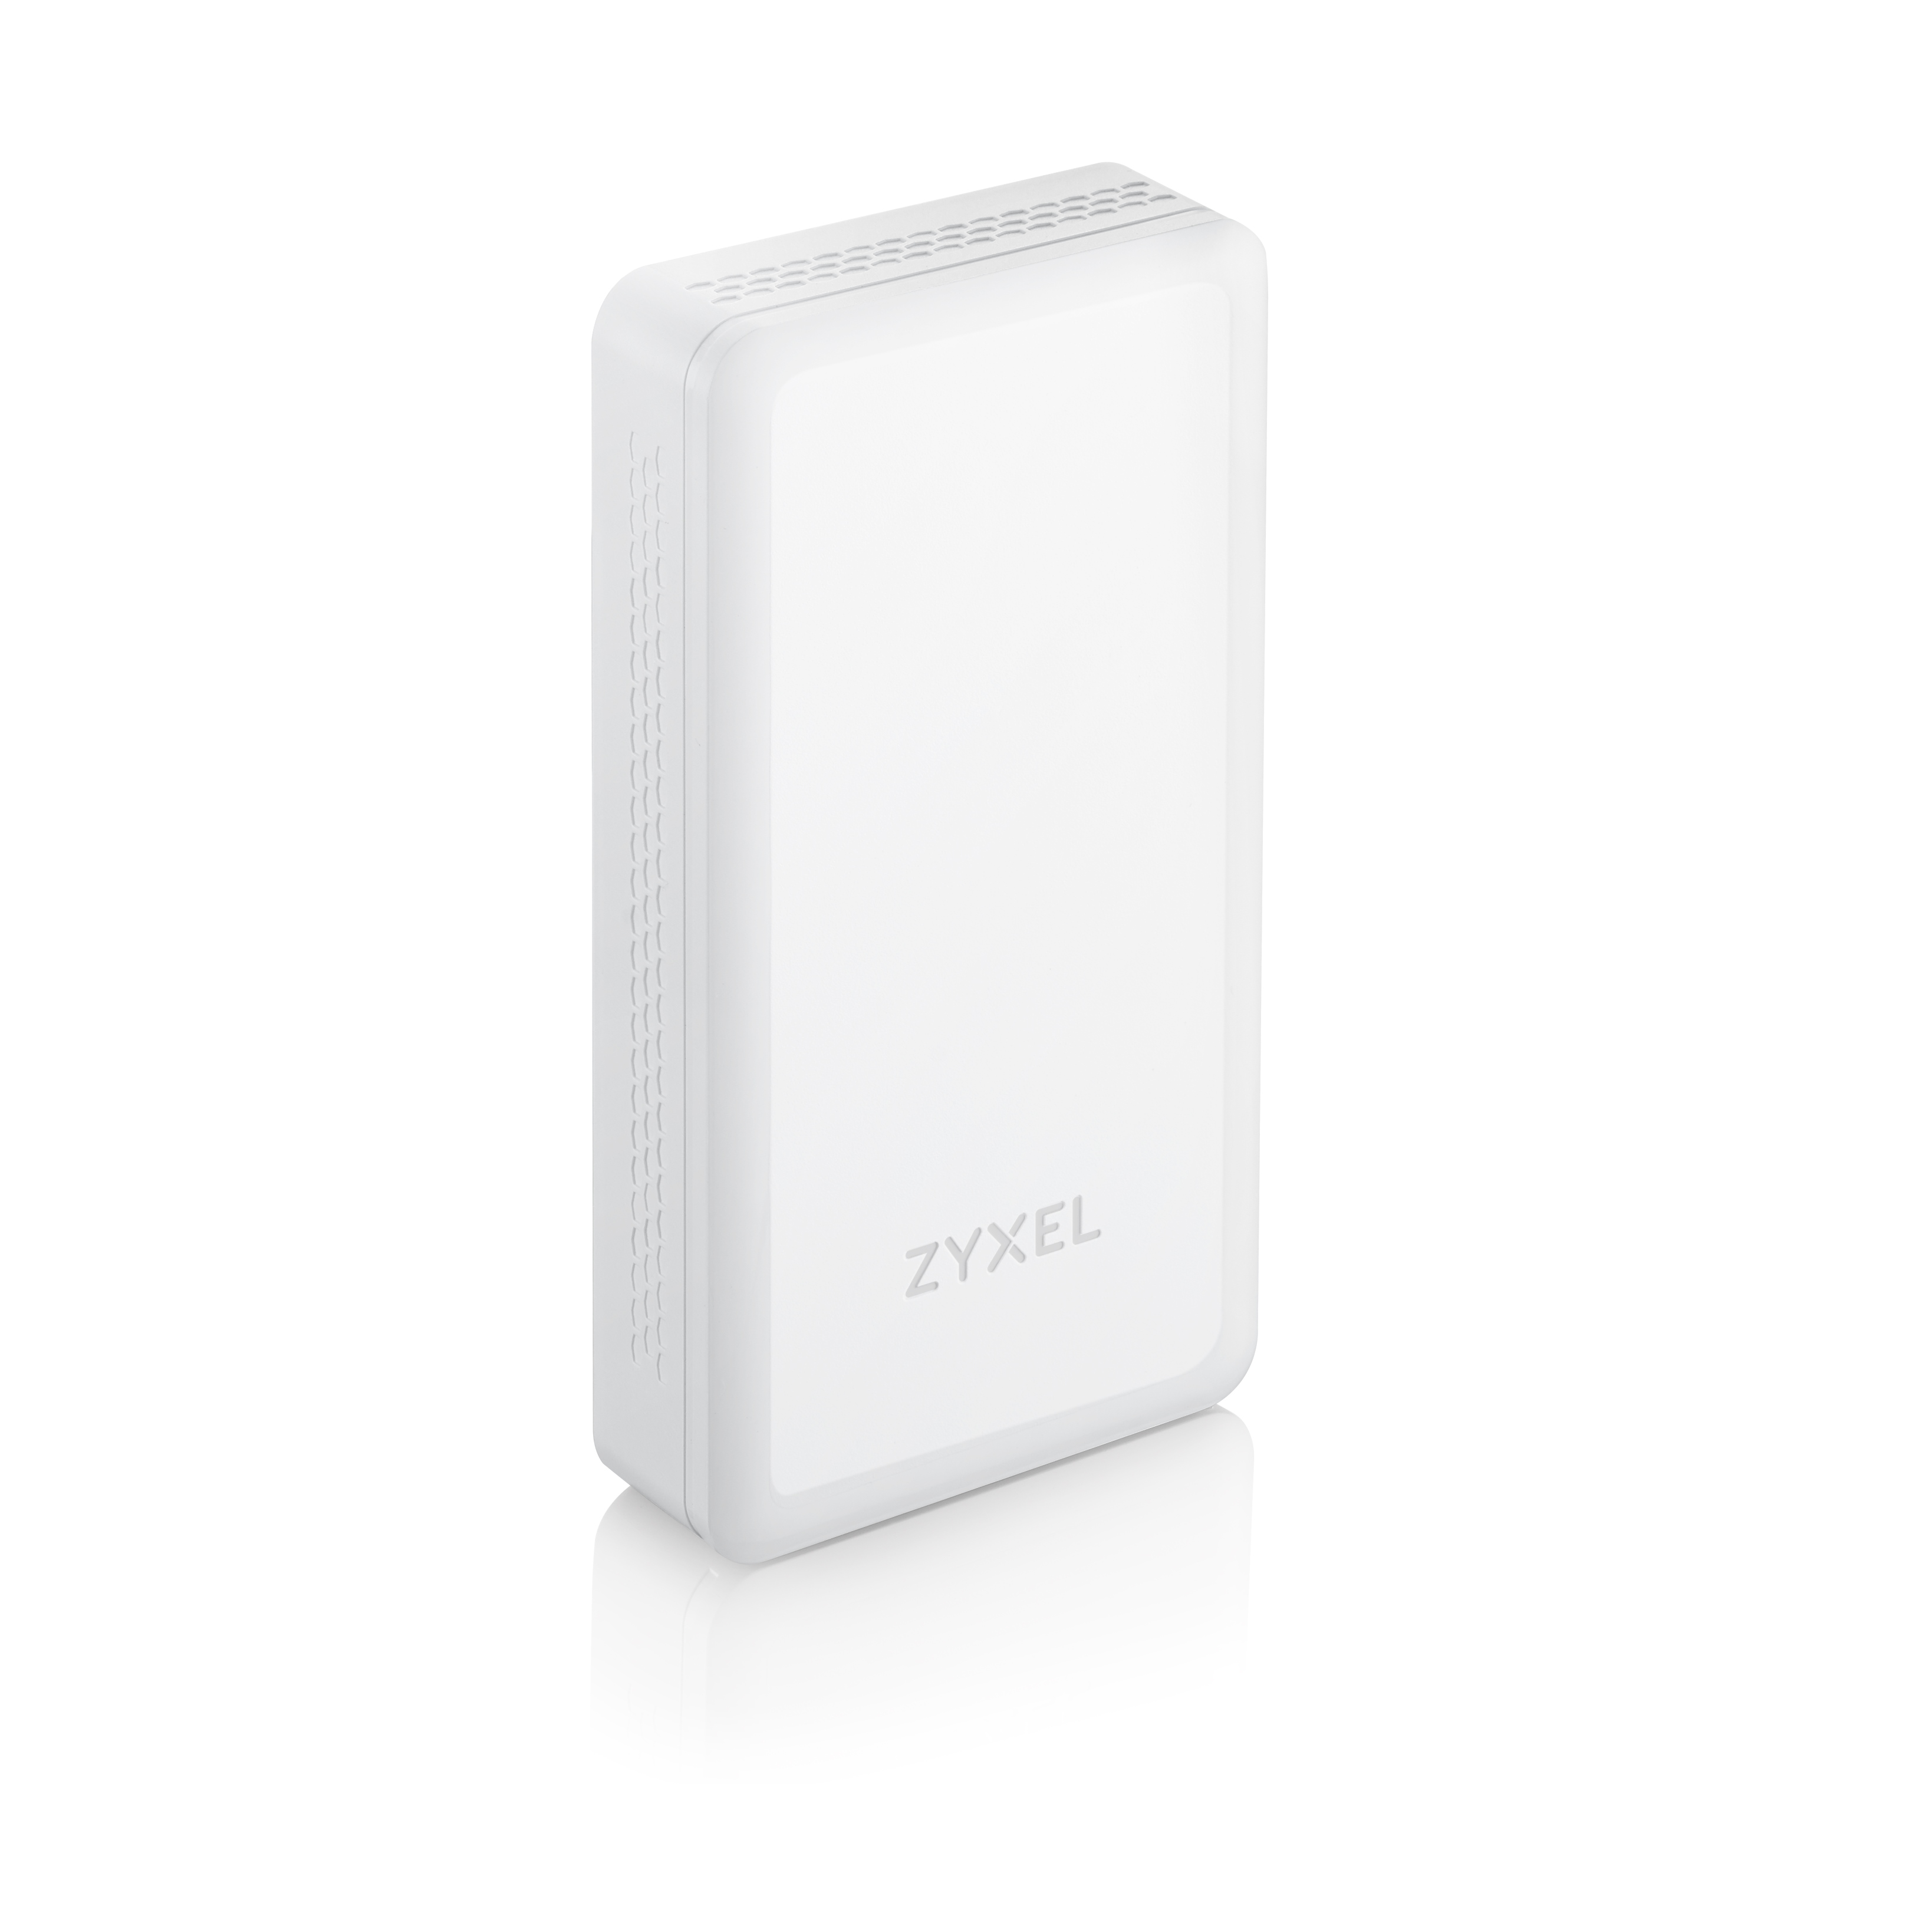 802.11ac Wall-Plate Unified Access Point